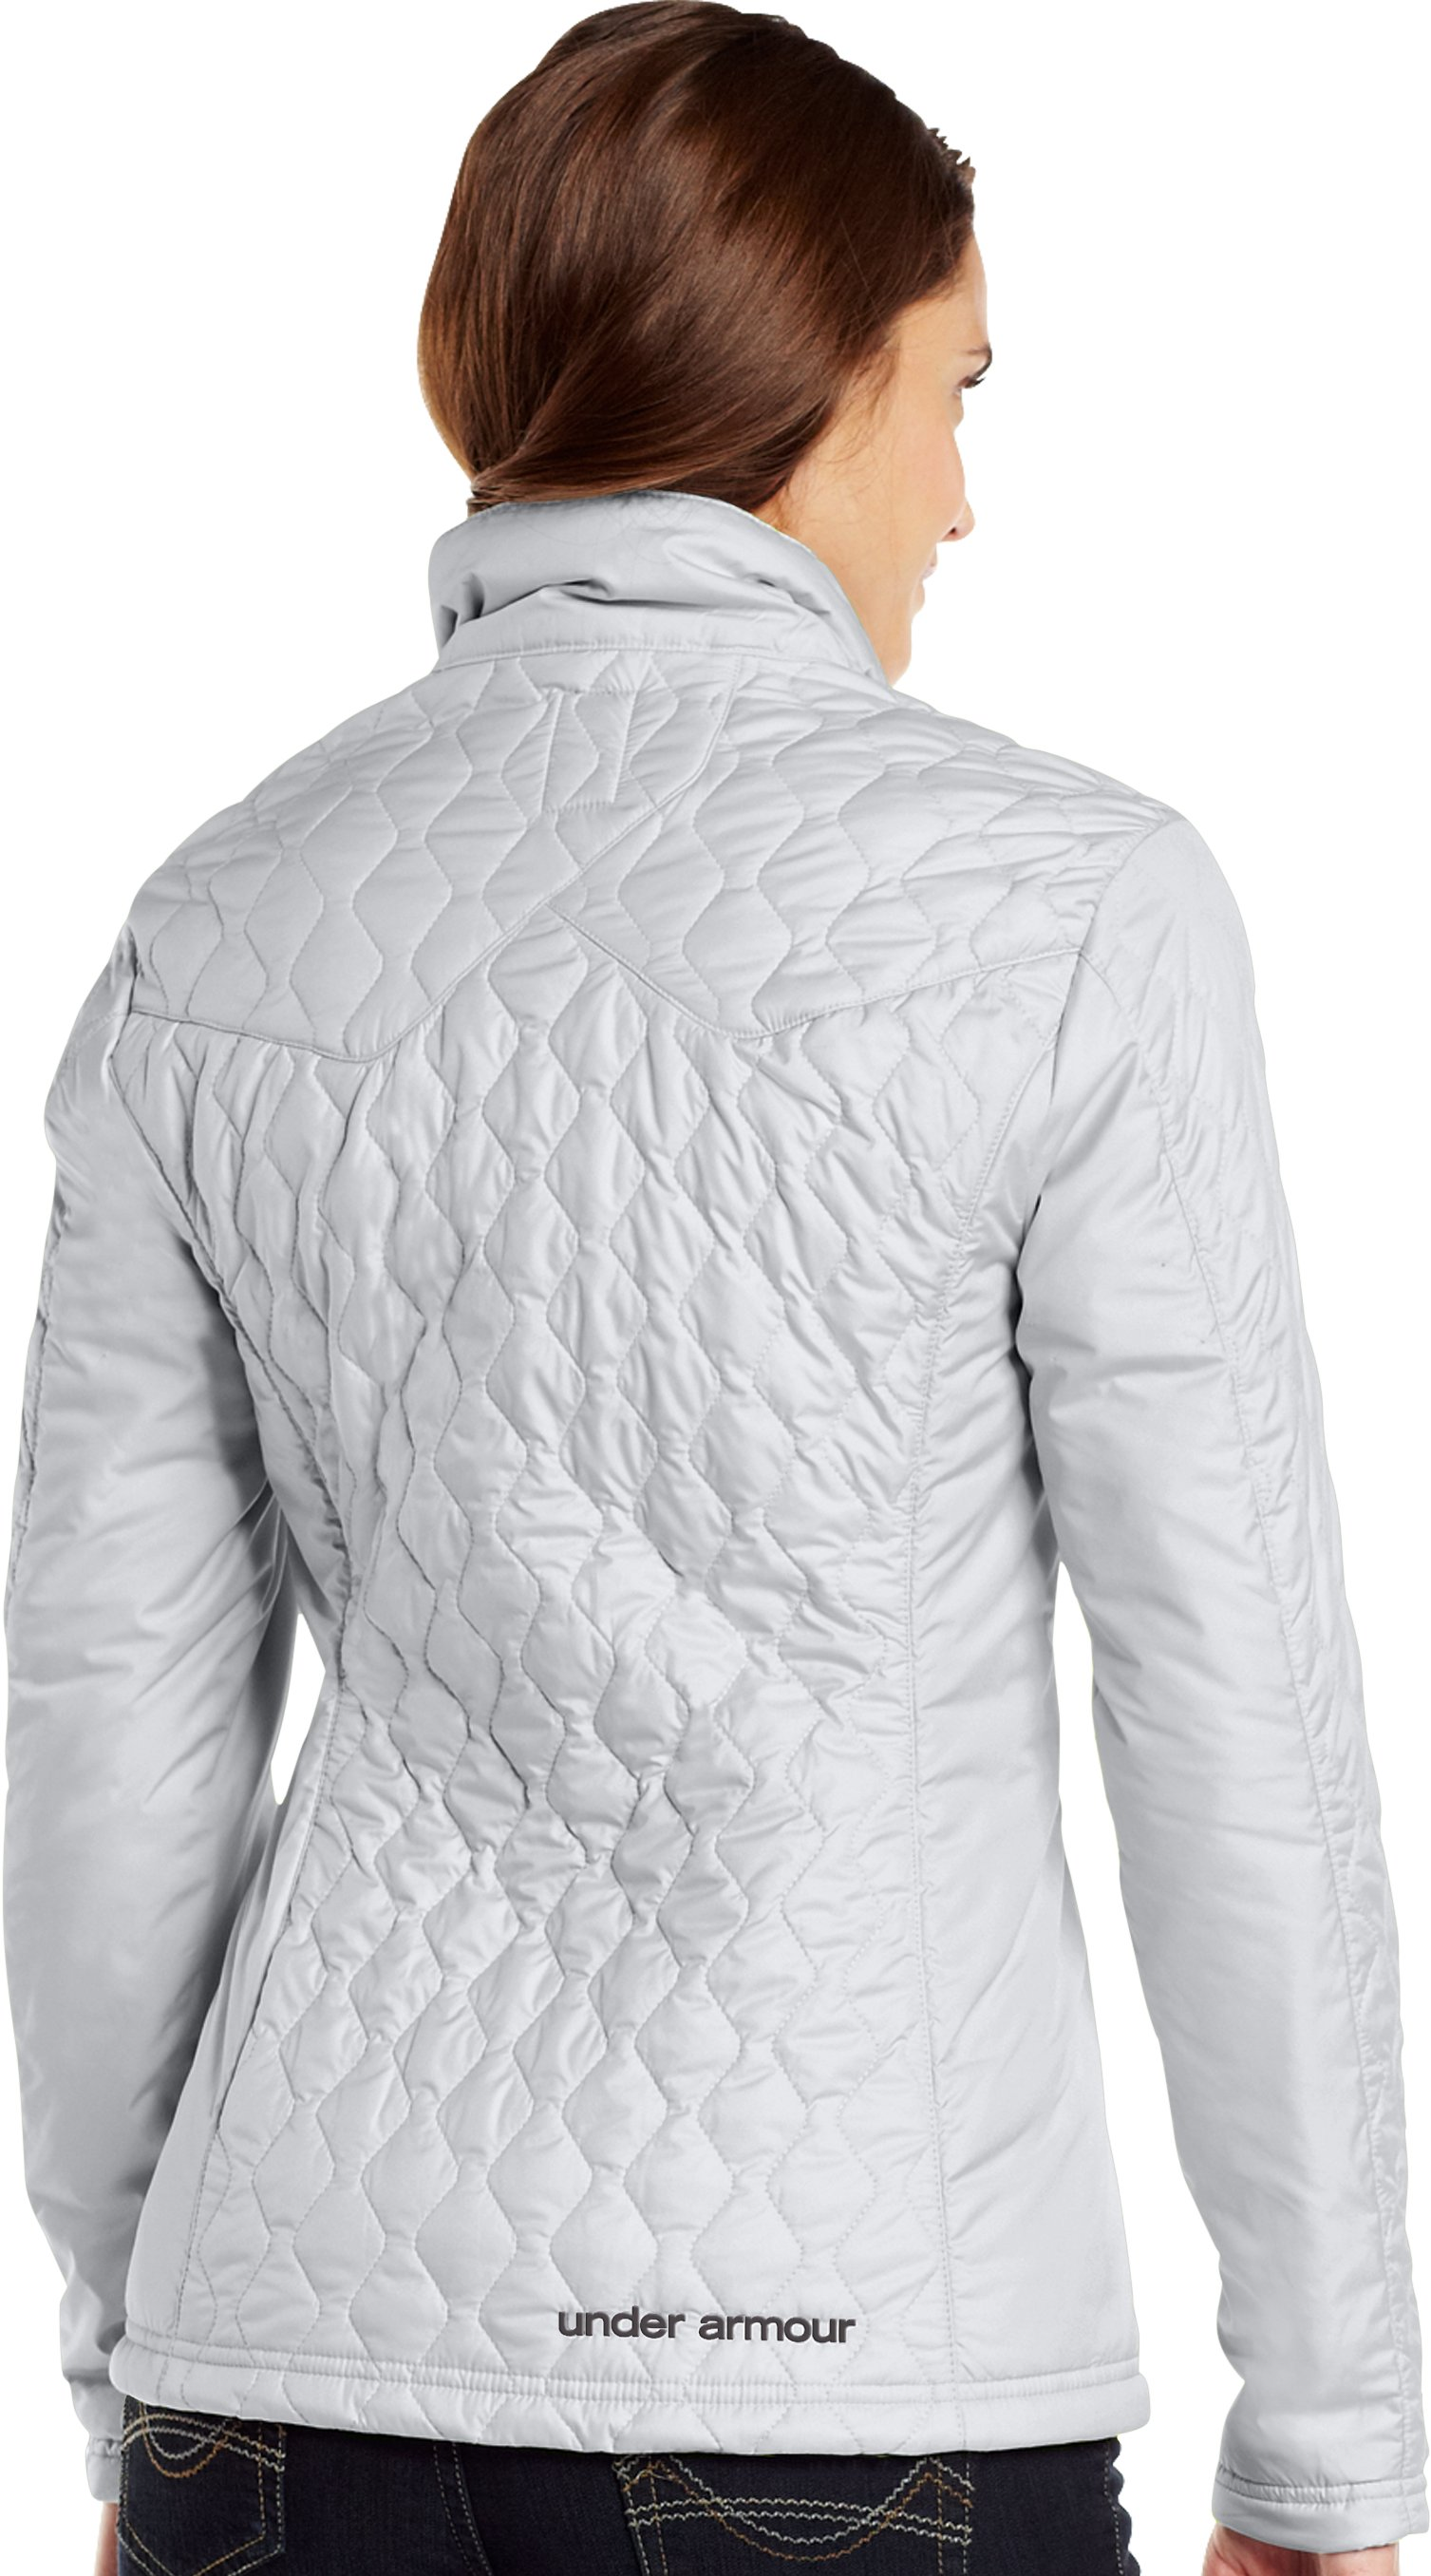 Women's ColdGear® Infrared Alpinlite Jacket, Elemental, Back